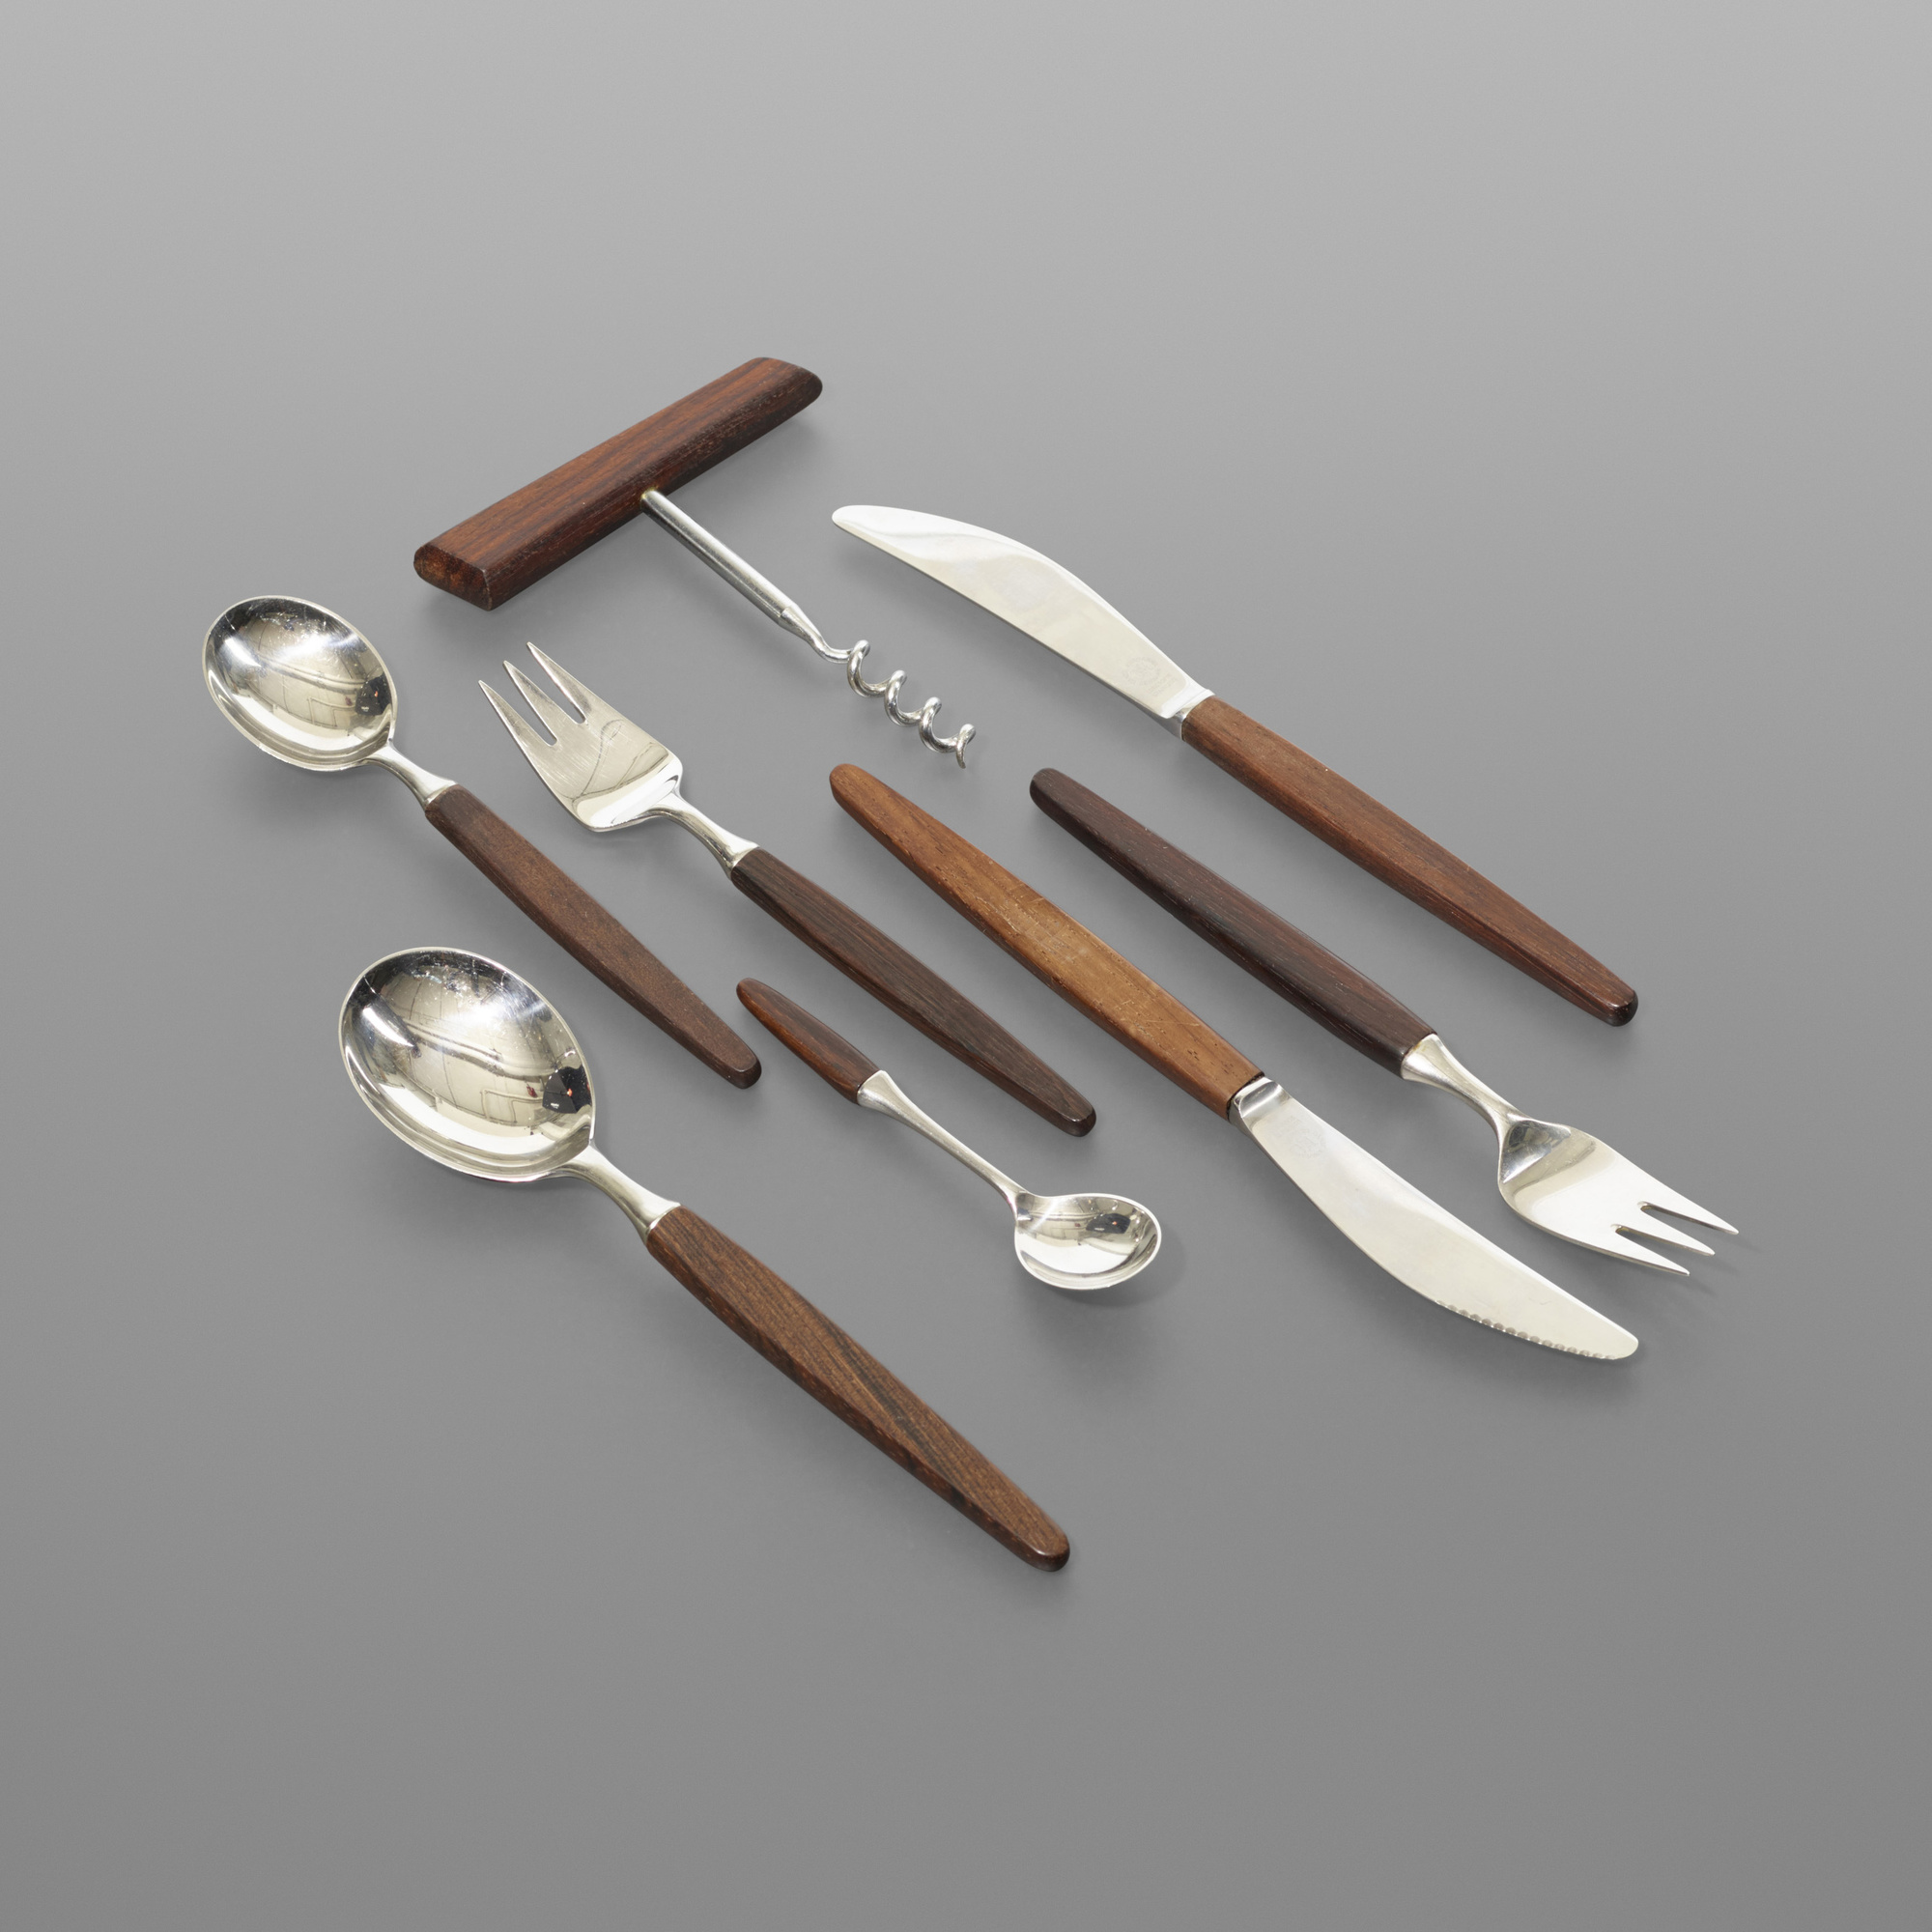 146: Tias Eckhoff / flatware set (1 of 2)